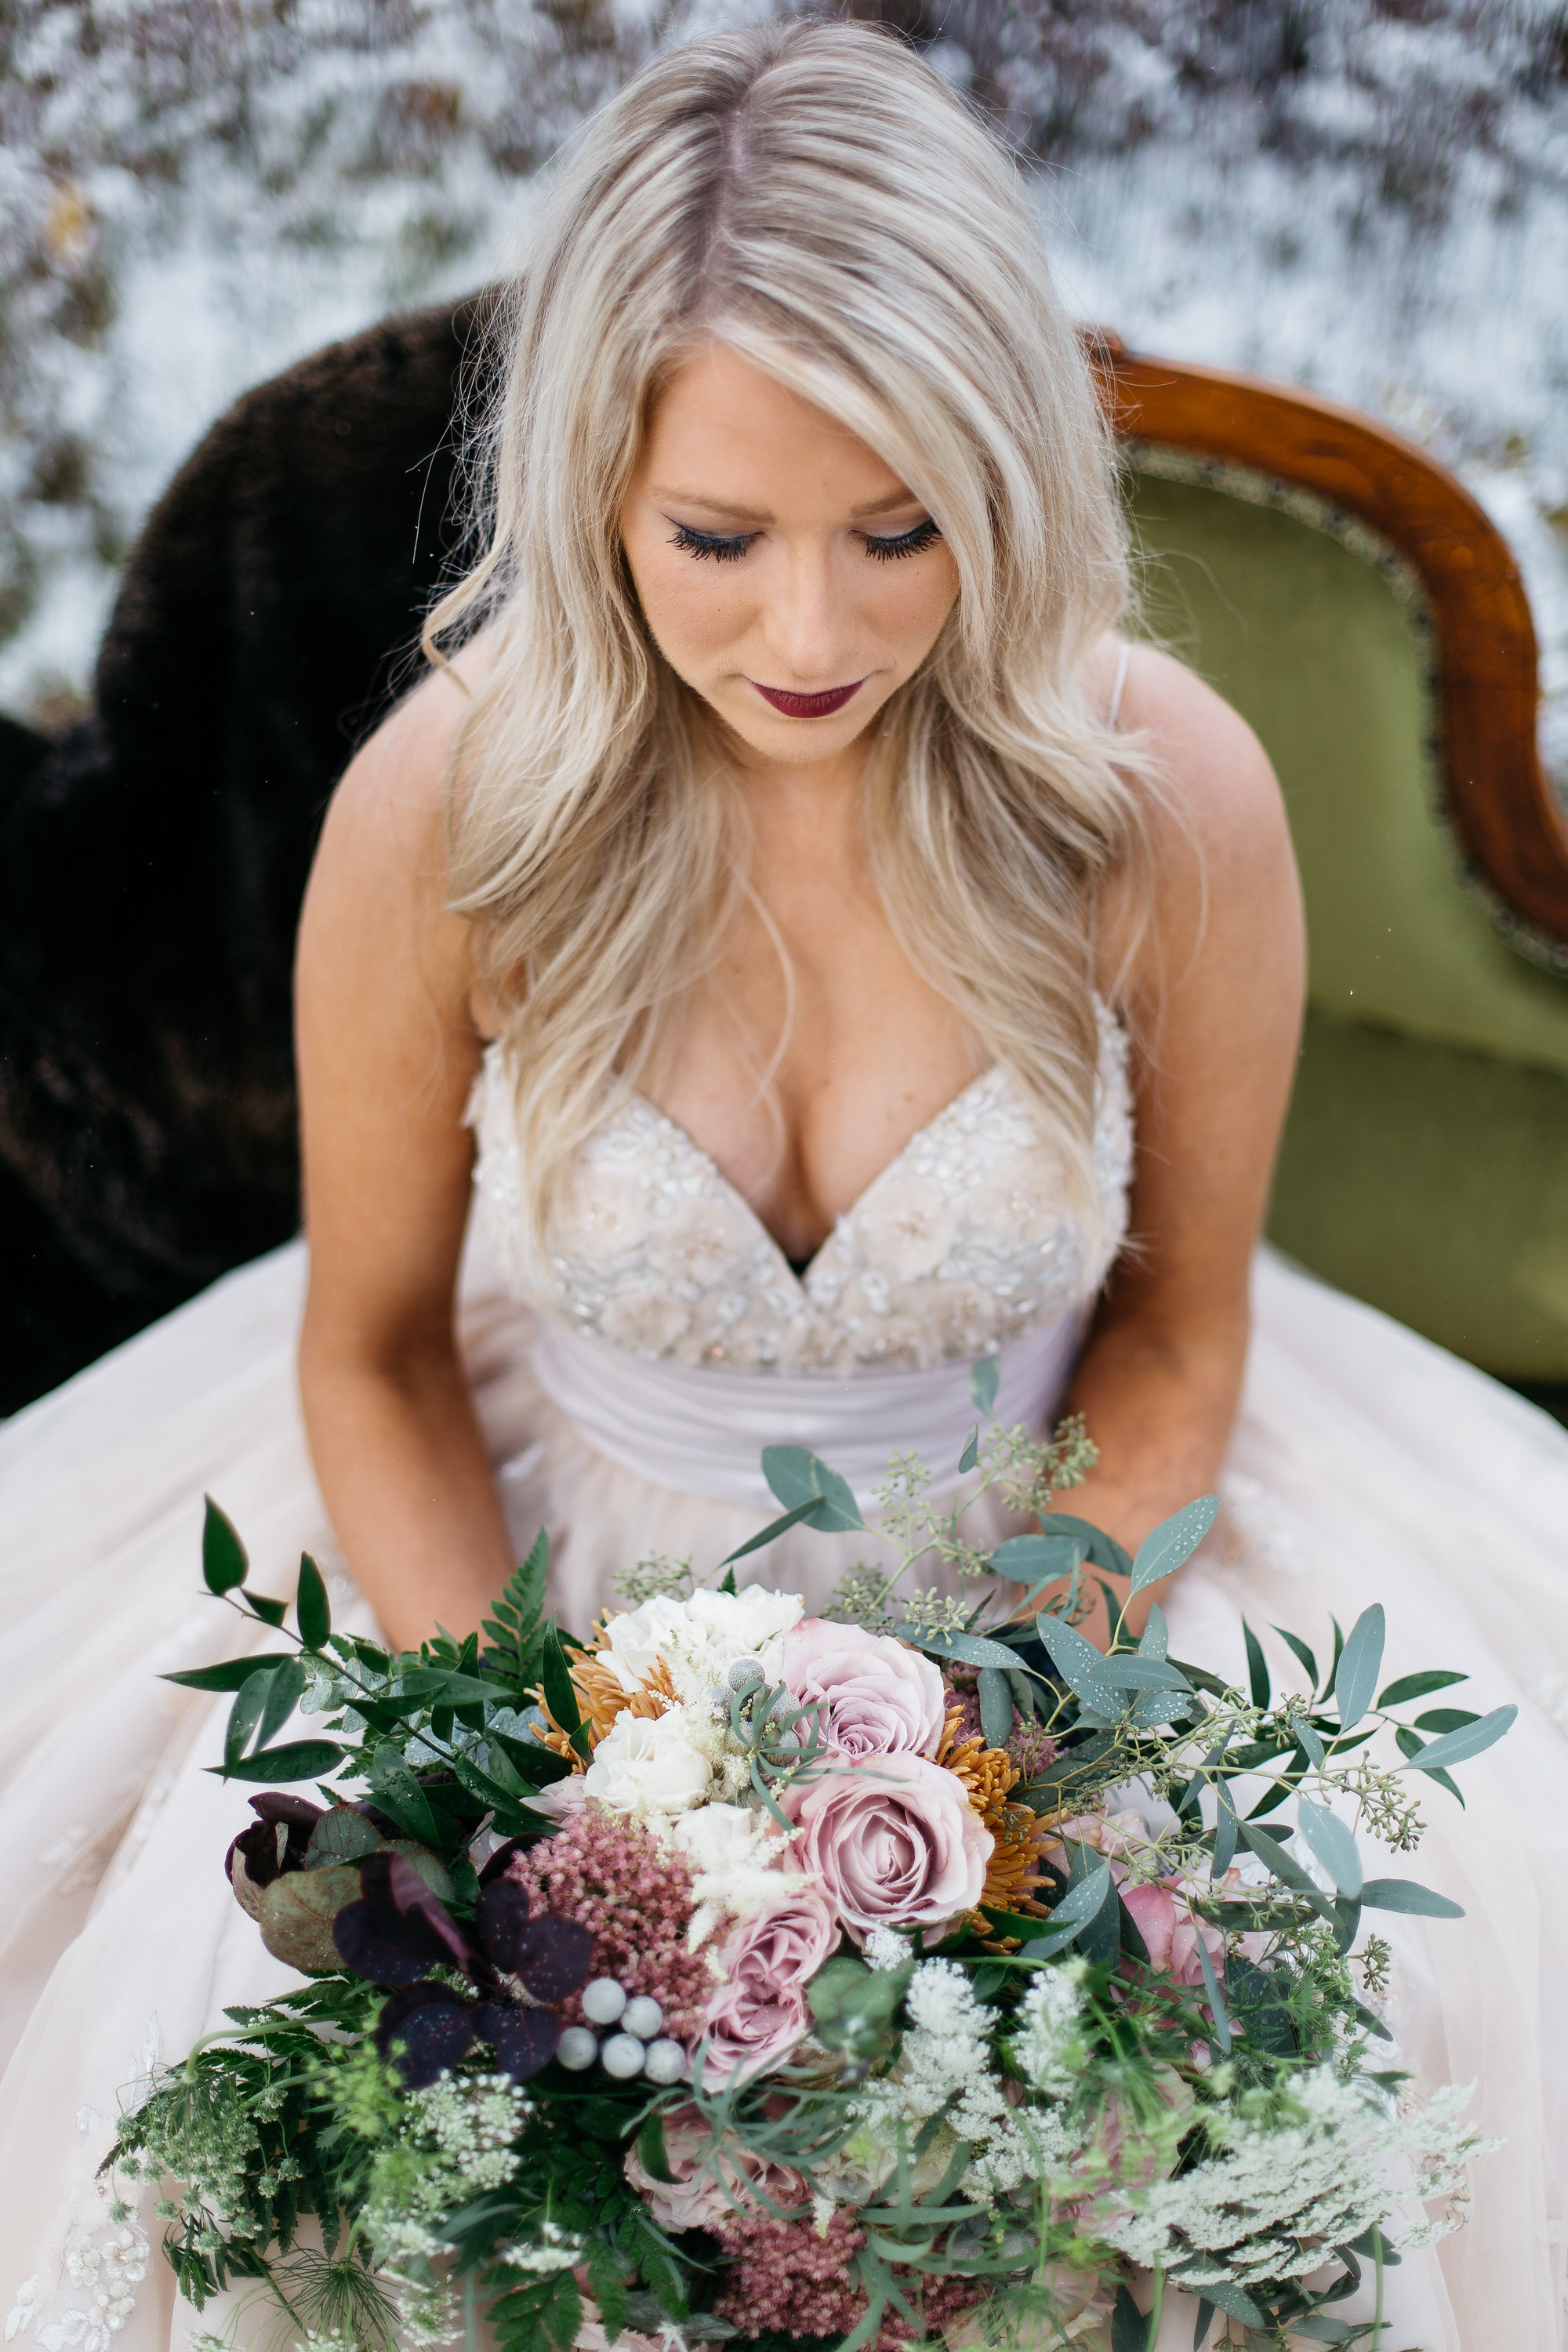 wedding florist from experienced floral boutique in calgary, alberta